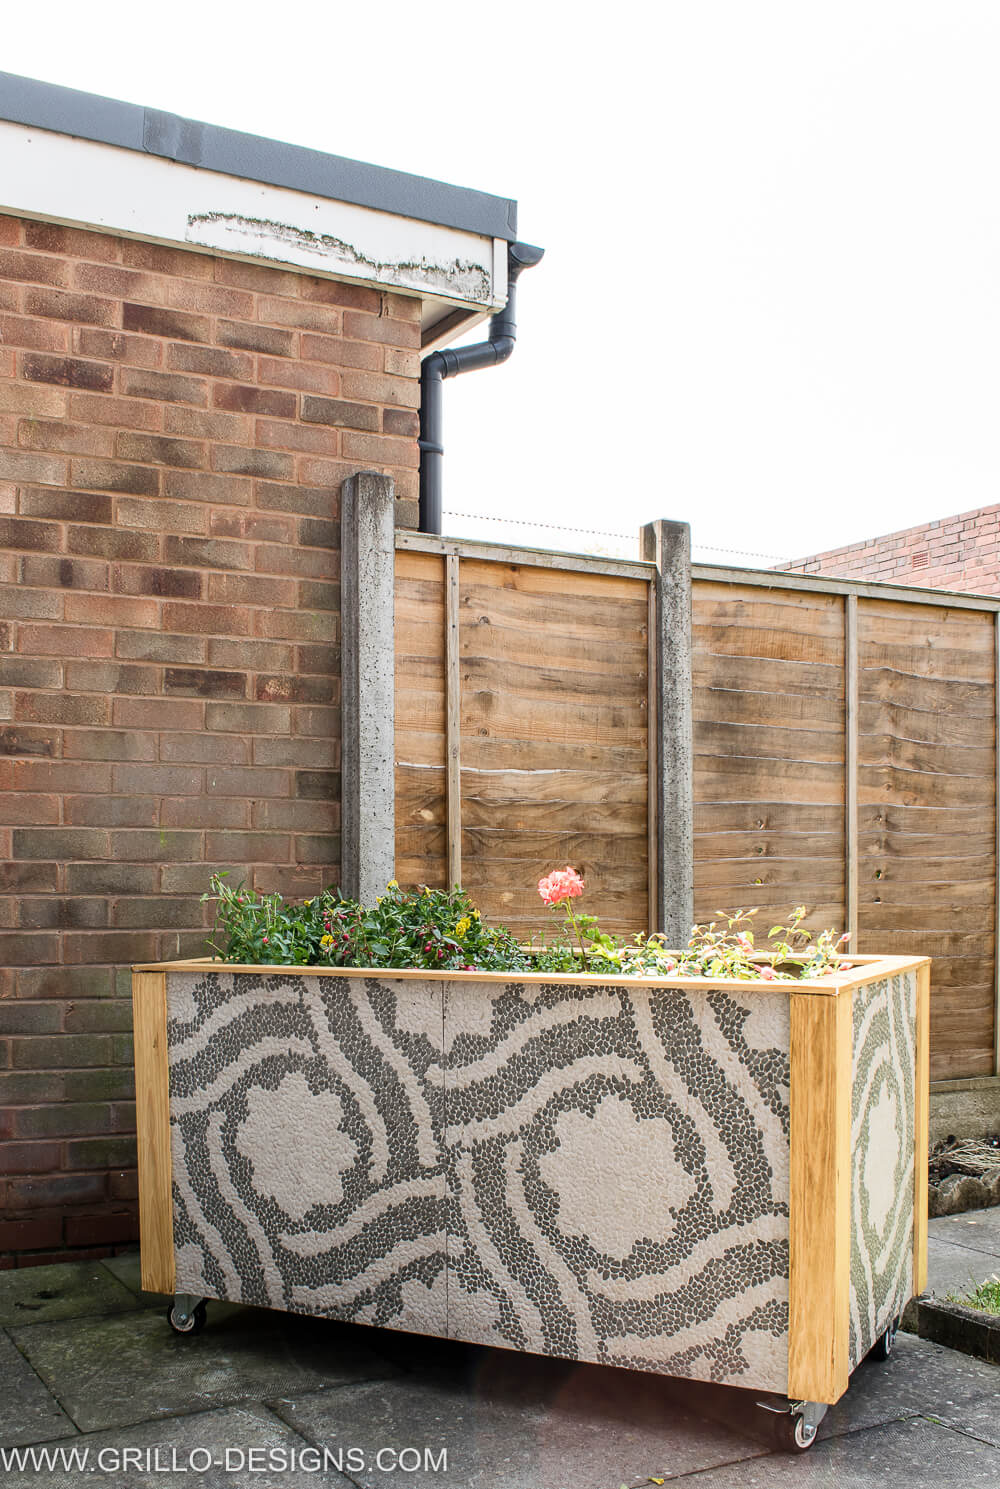 Use tiles to make a trough planter / grillo designs